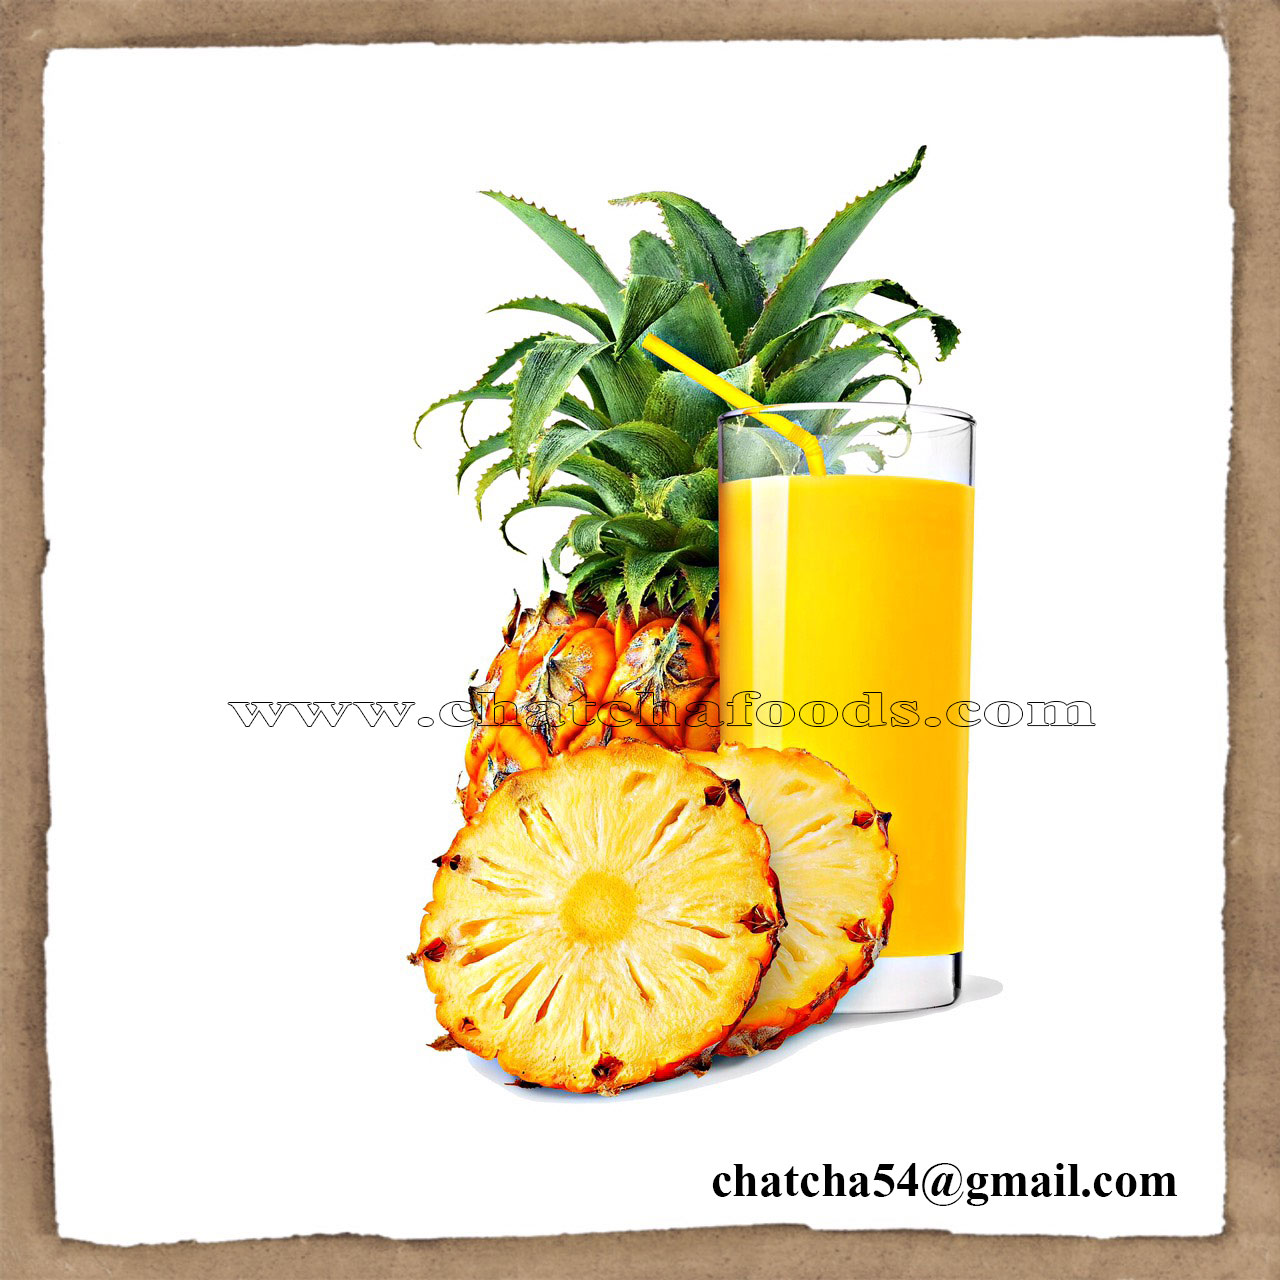 Aseptic pineapple juice concentrate 65 brix